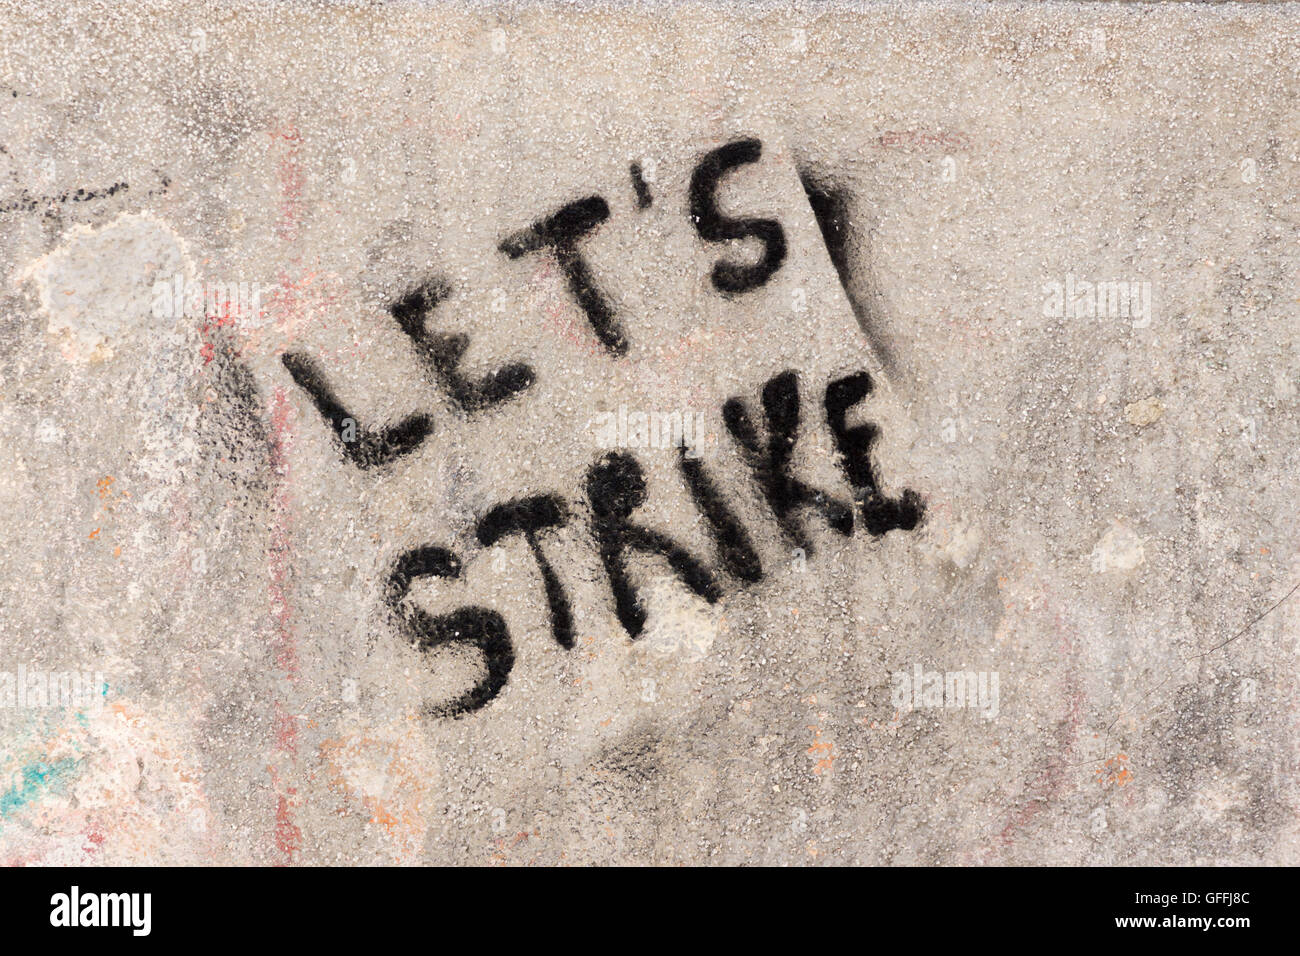 graffiti-on-a-wall-in-venice-lets-strike